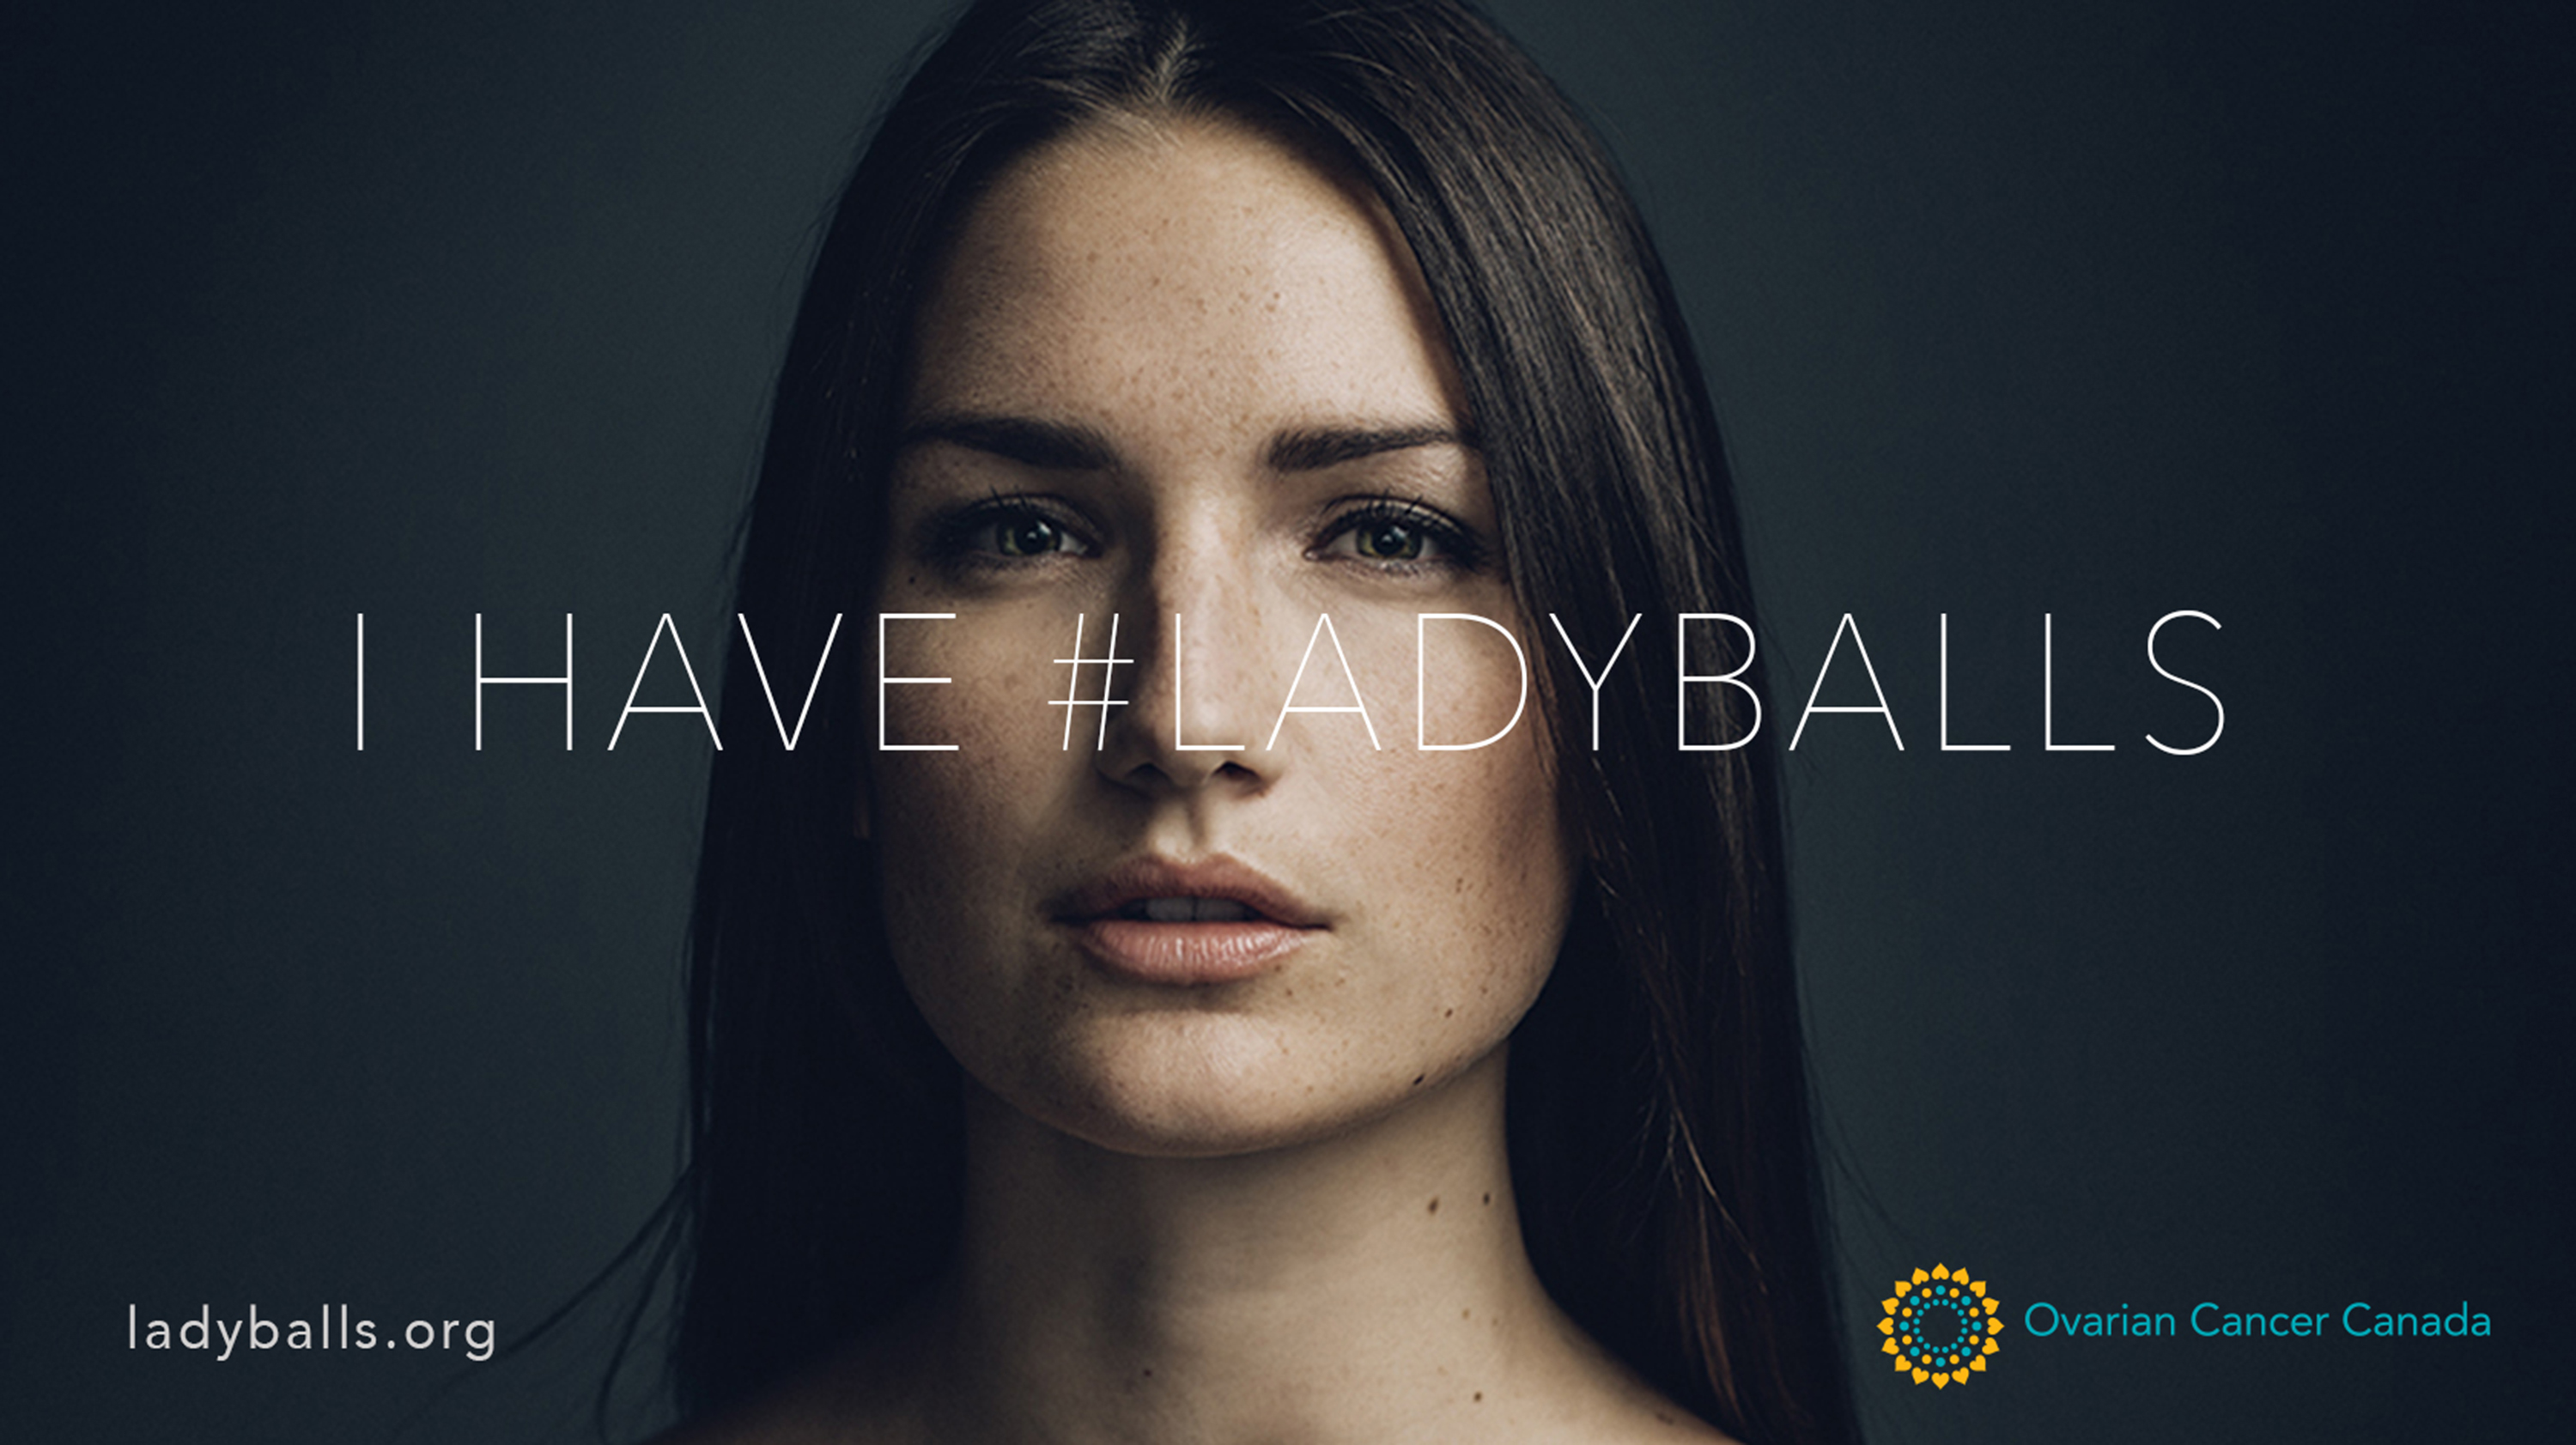 Image Media for Ladyballs